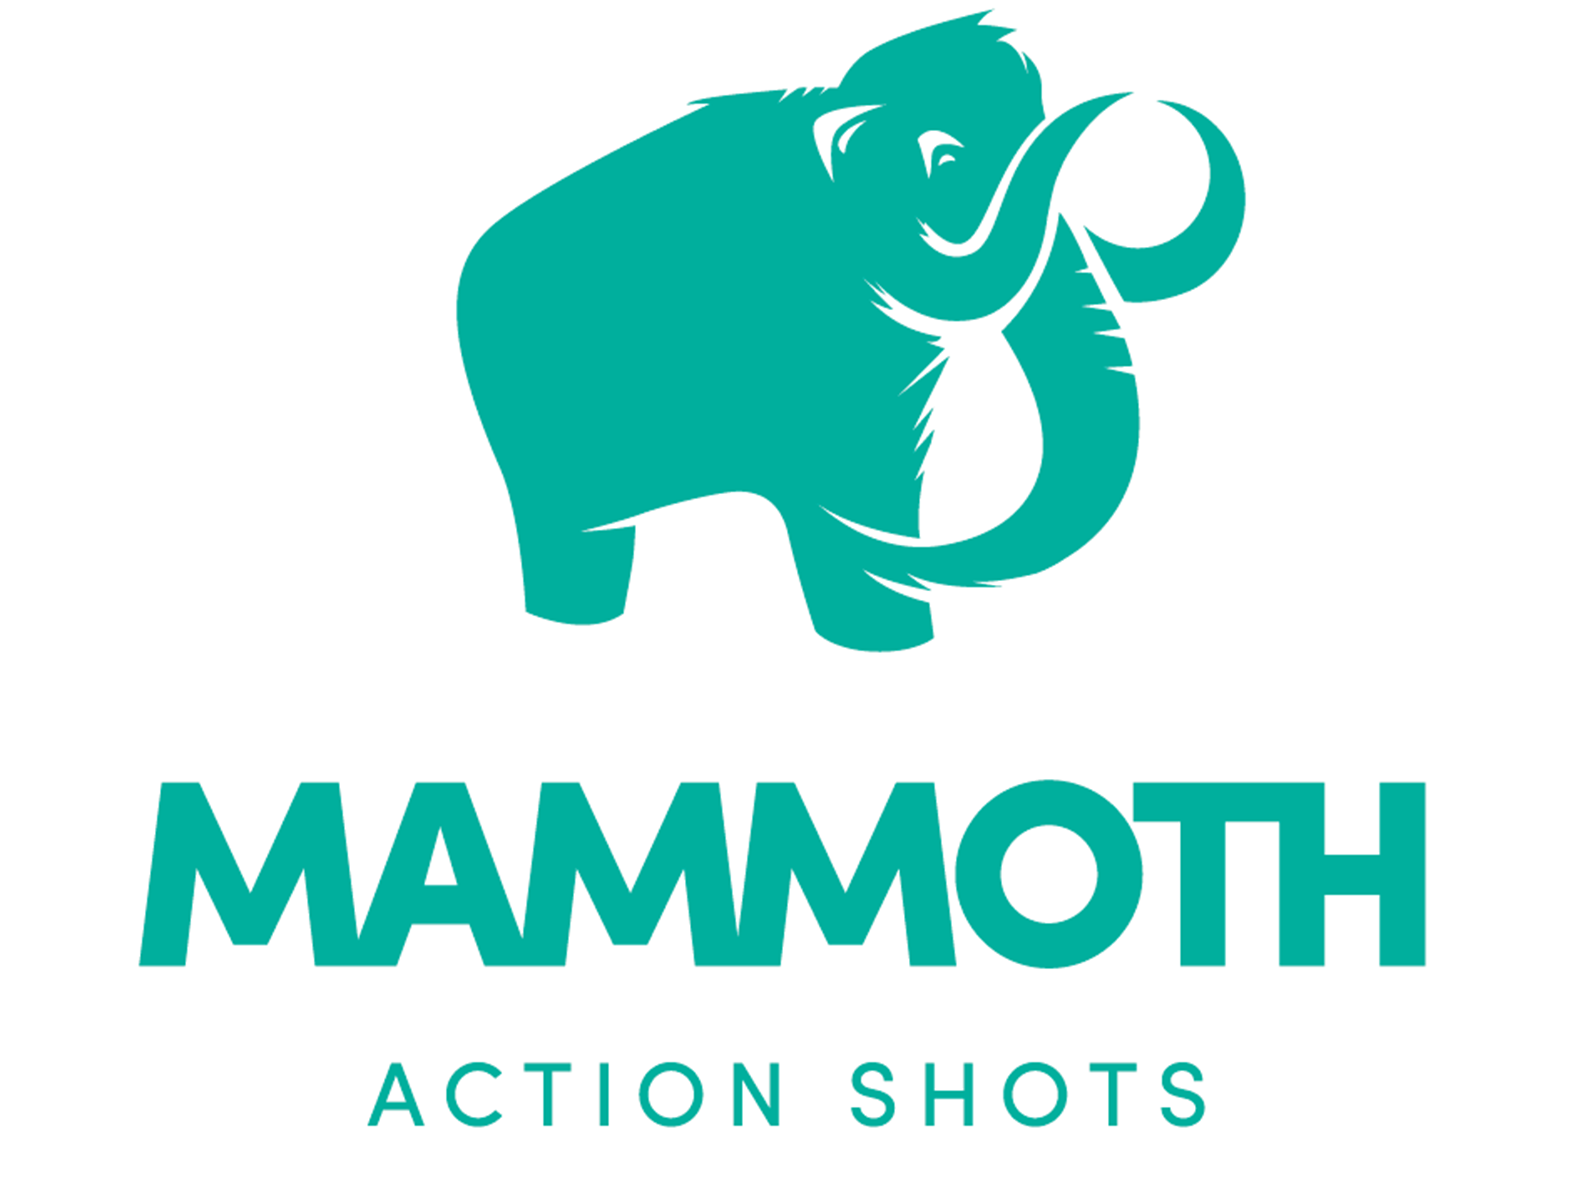 Mammoth Action Shots